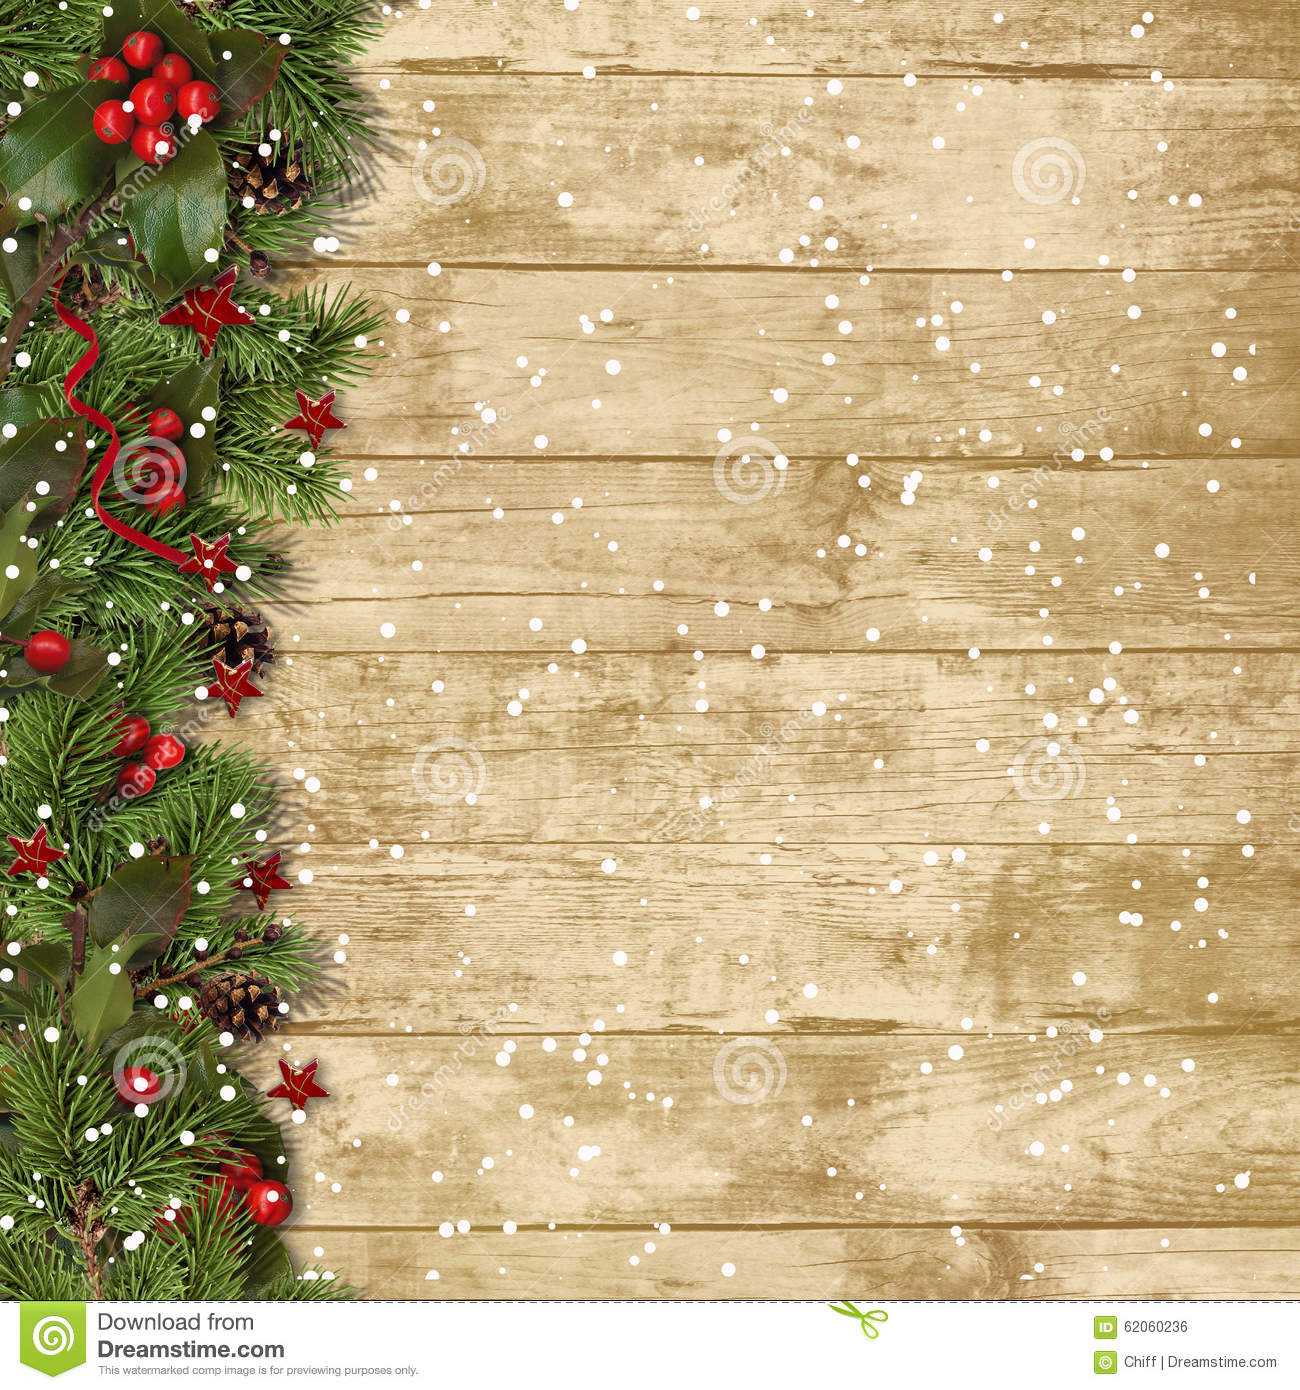 Christmas fir branches and holly on wood background stock for Background decoration images